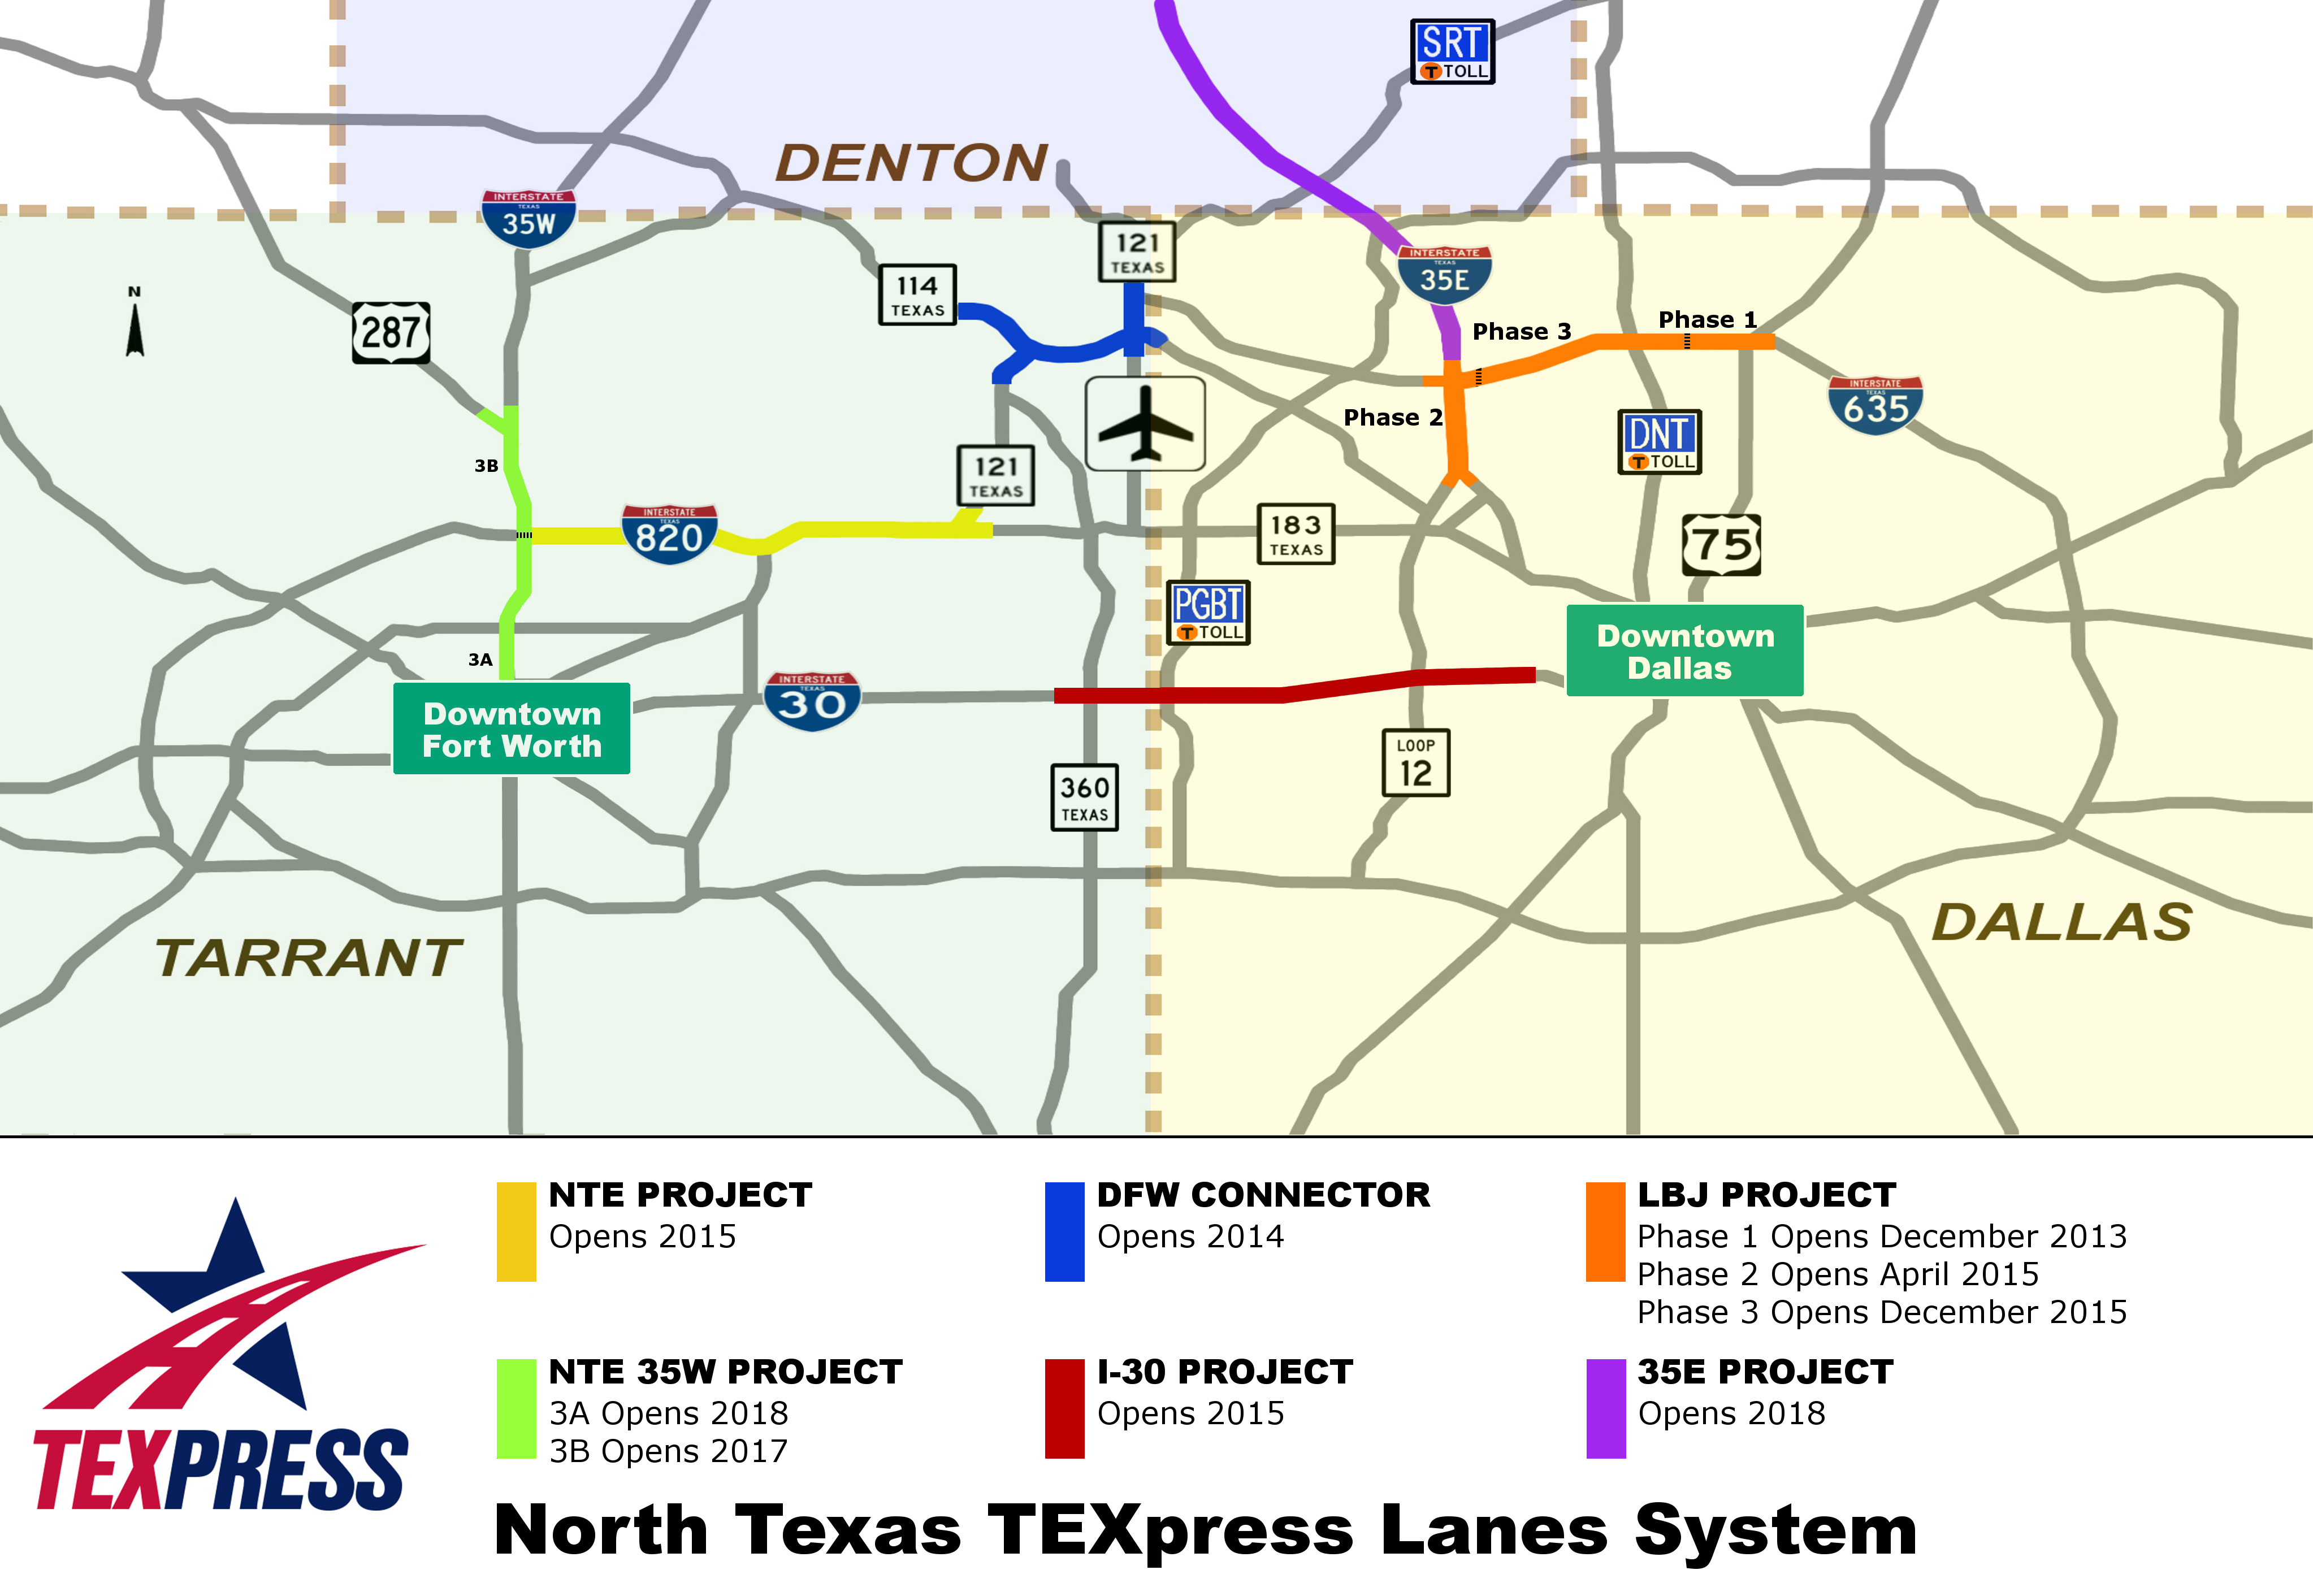 dallas toll roads map Texpress Is Here Are You Ready Ahmadiyya Muslim Community Dallas dallas toll roads map